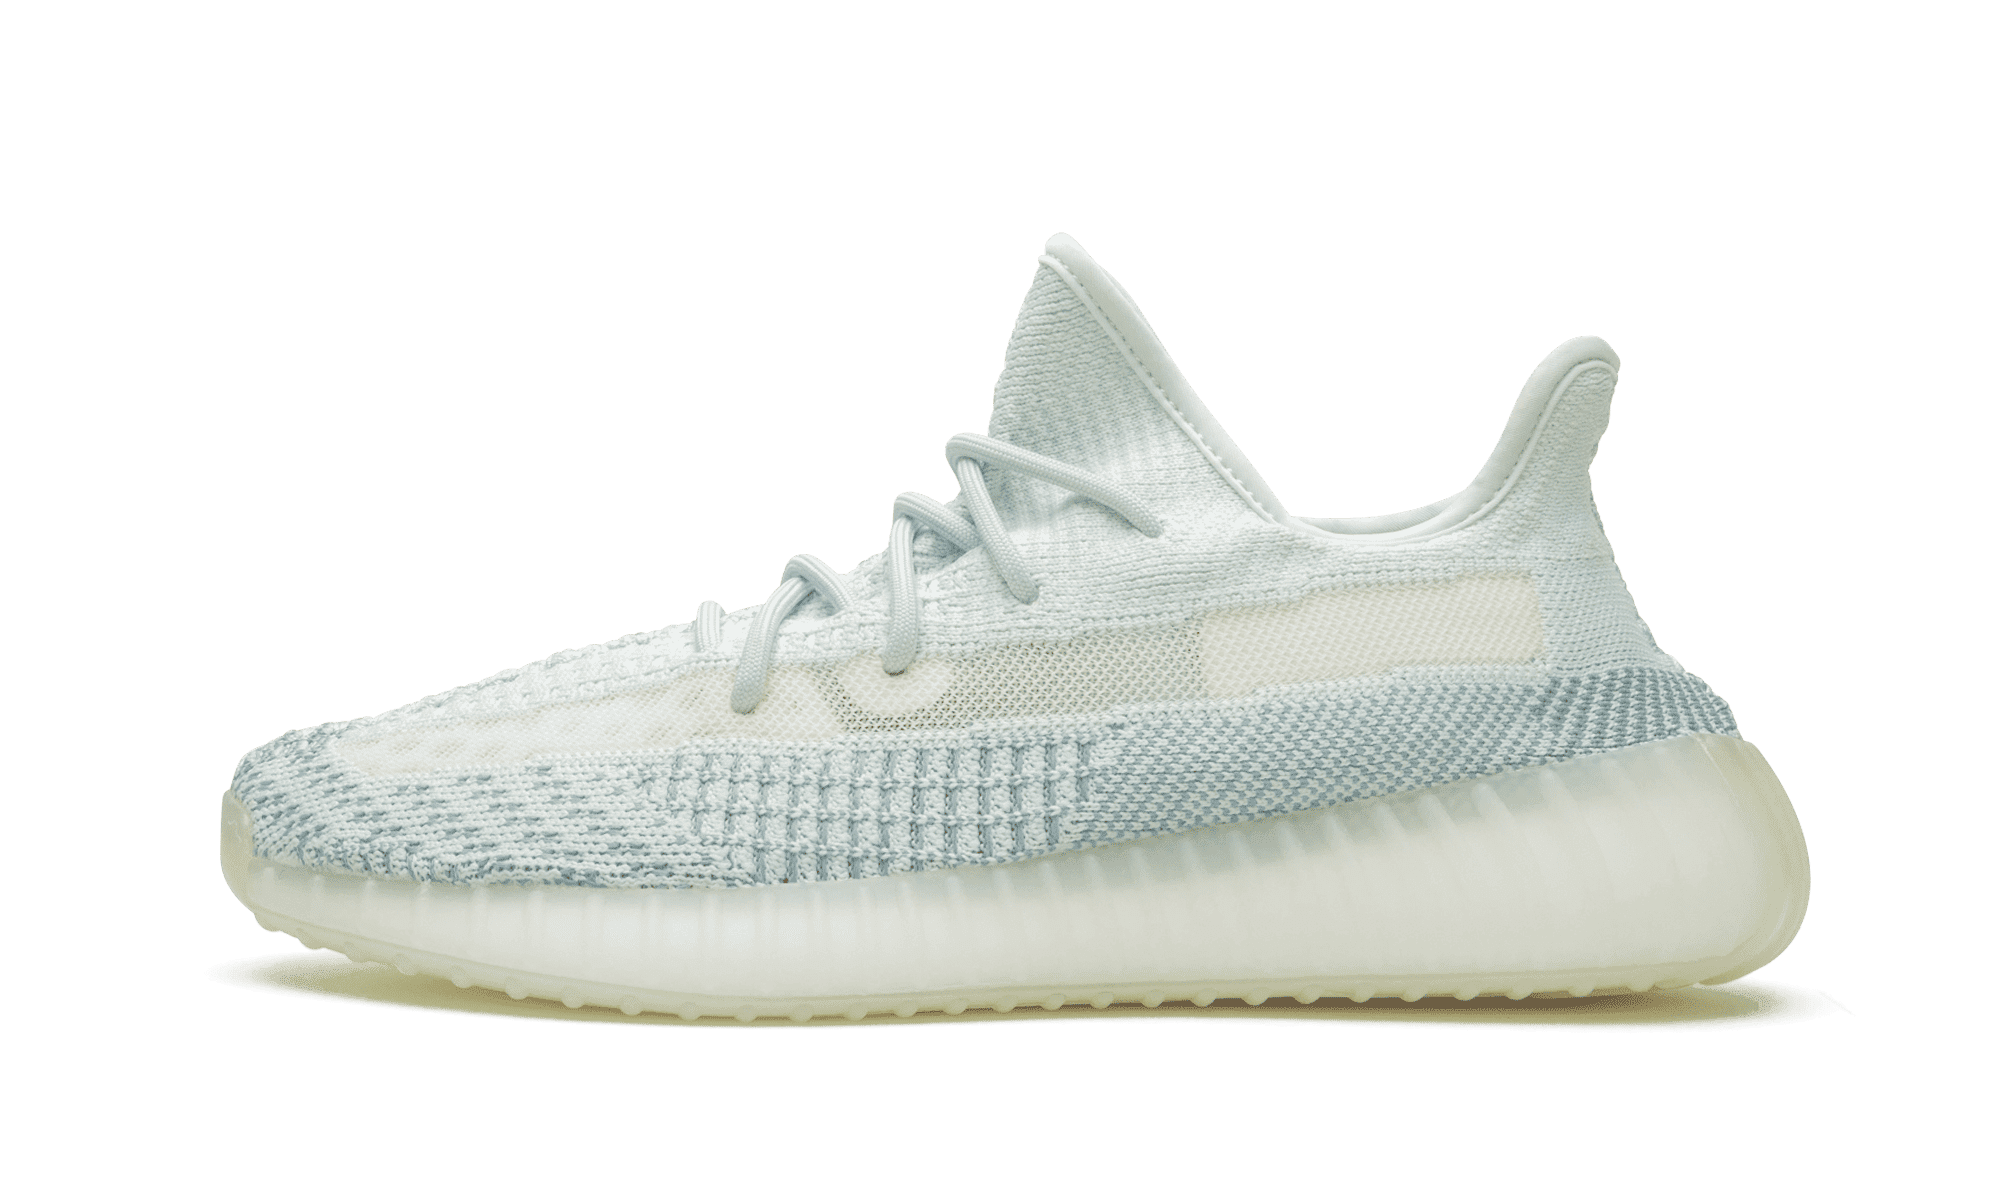 YEEZY BOOST 350 V2 CLOUD WHITE REFLECTIVE